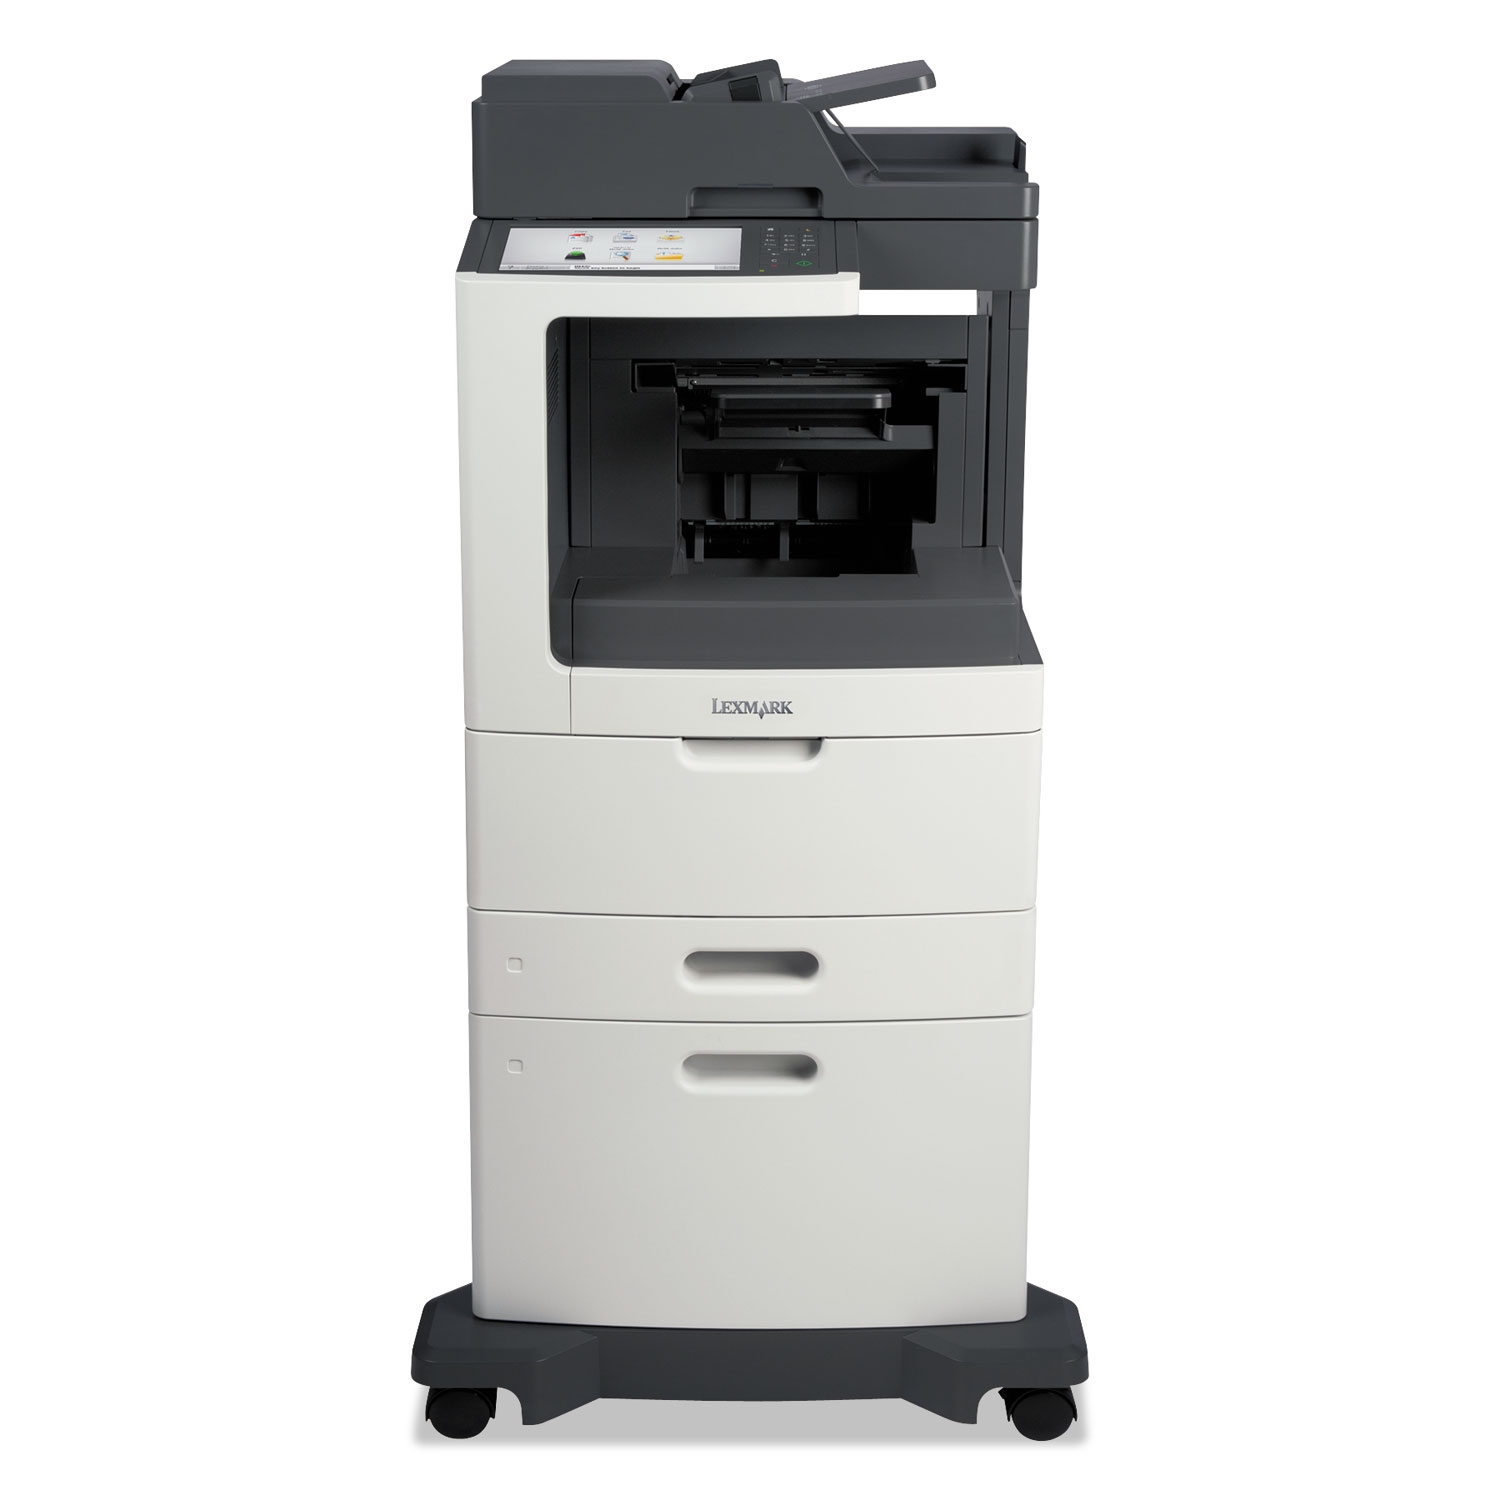 MX810dxfe Multifunction Laser Printer, Copy/Fax/Print/Scan